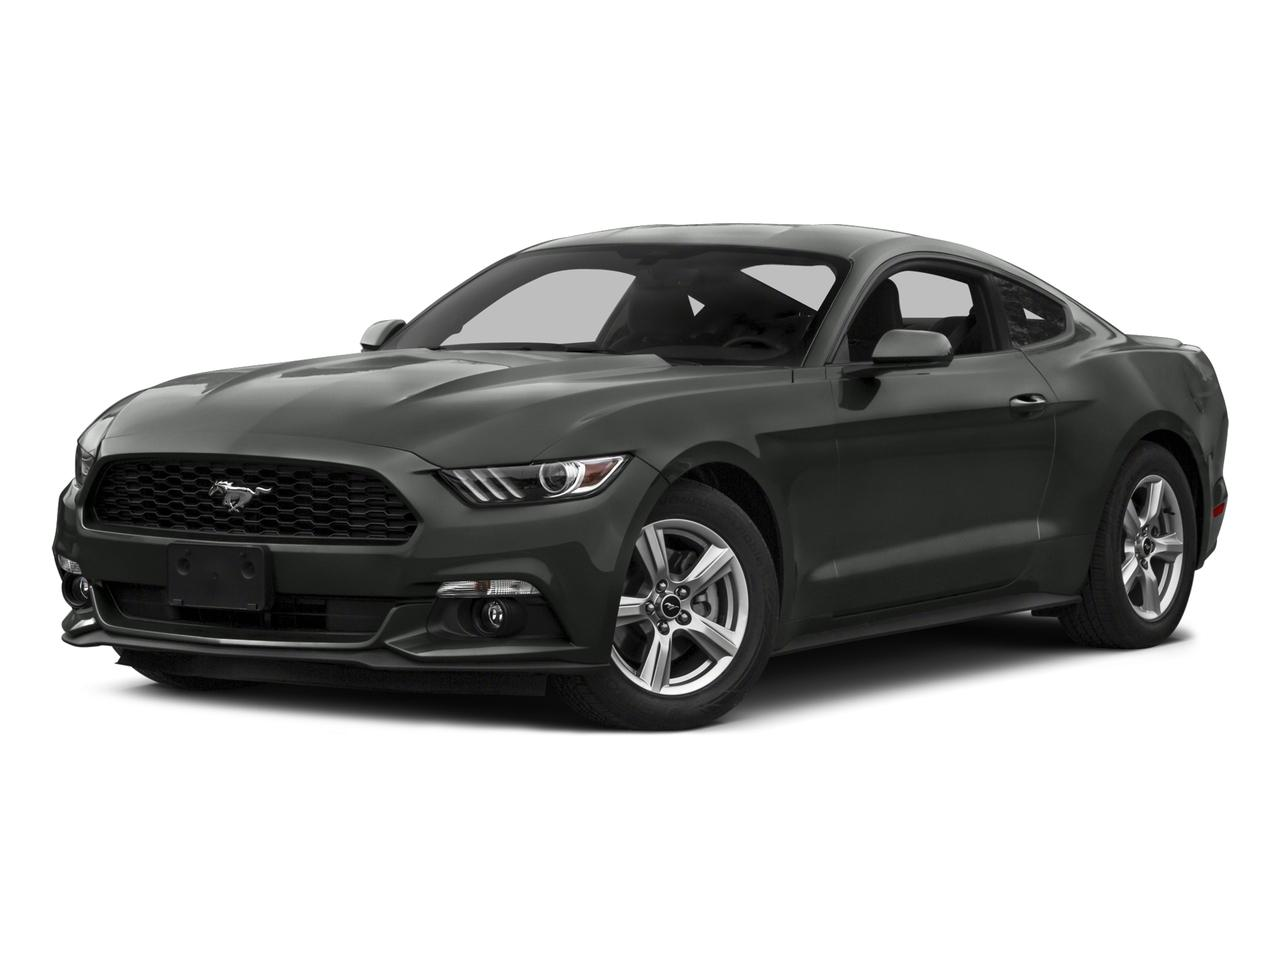 2015 Ford Mustang Vehicle Photo in Elyria, OH 44035